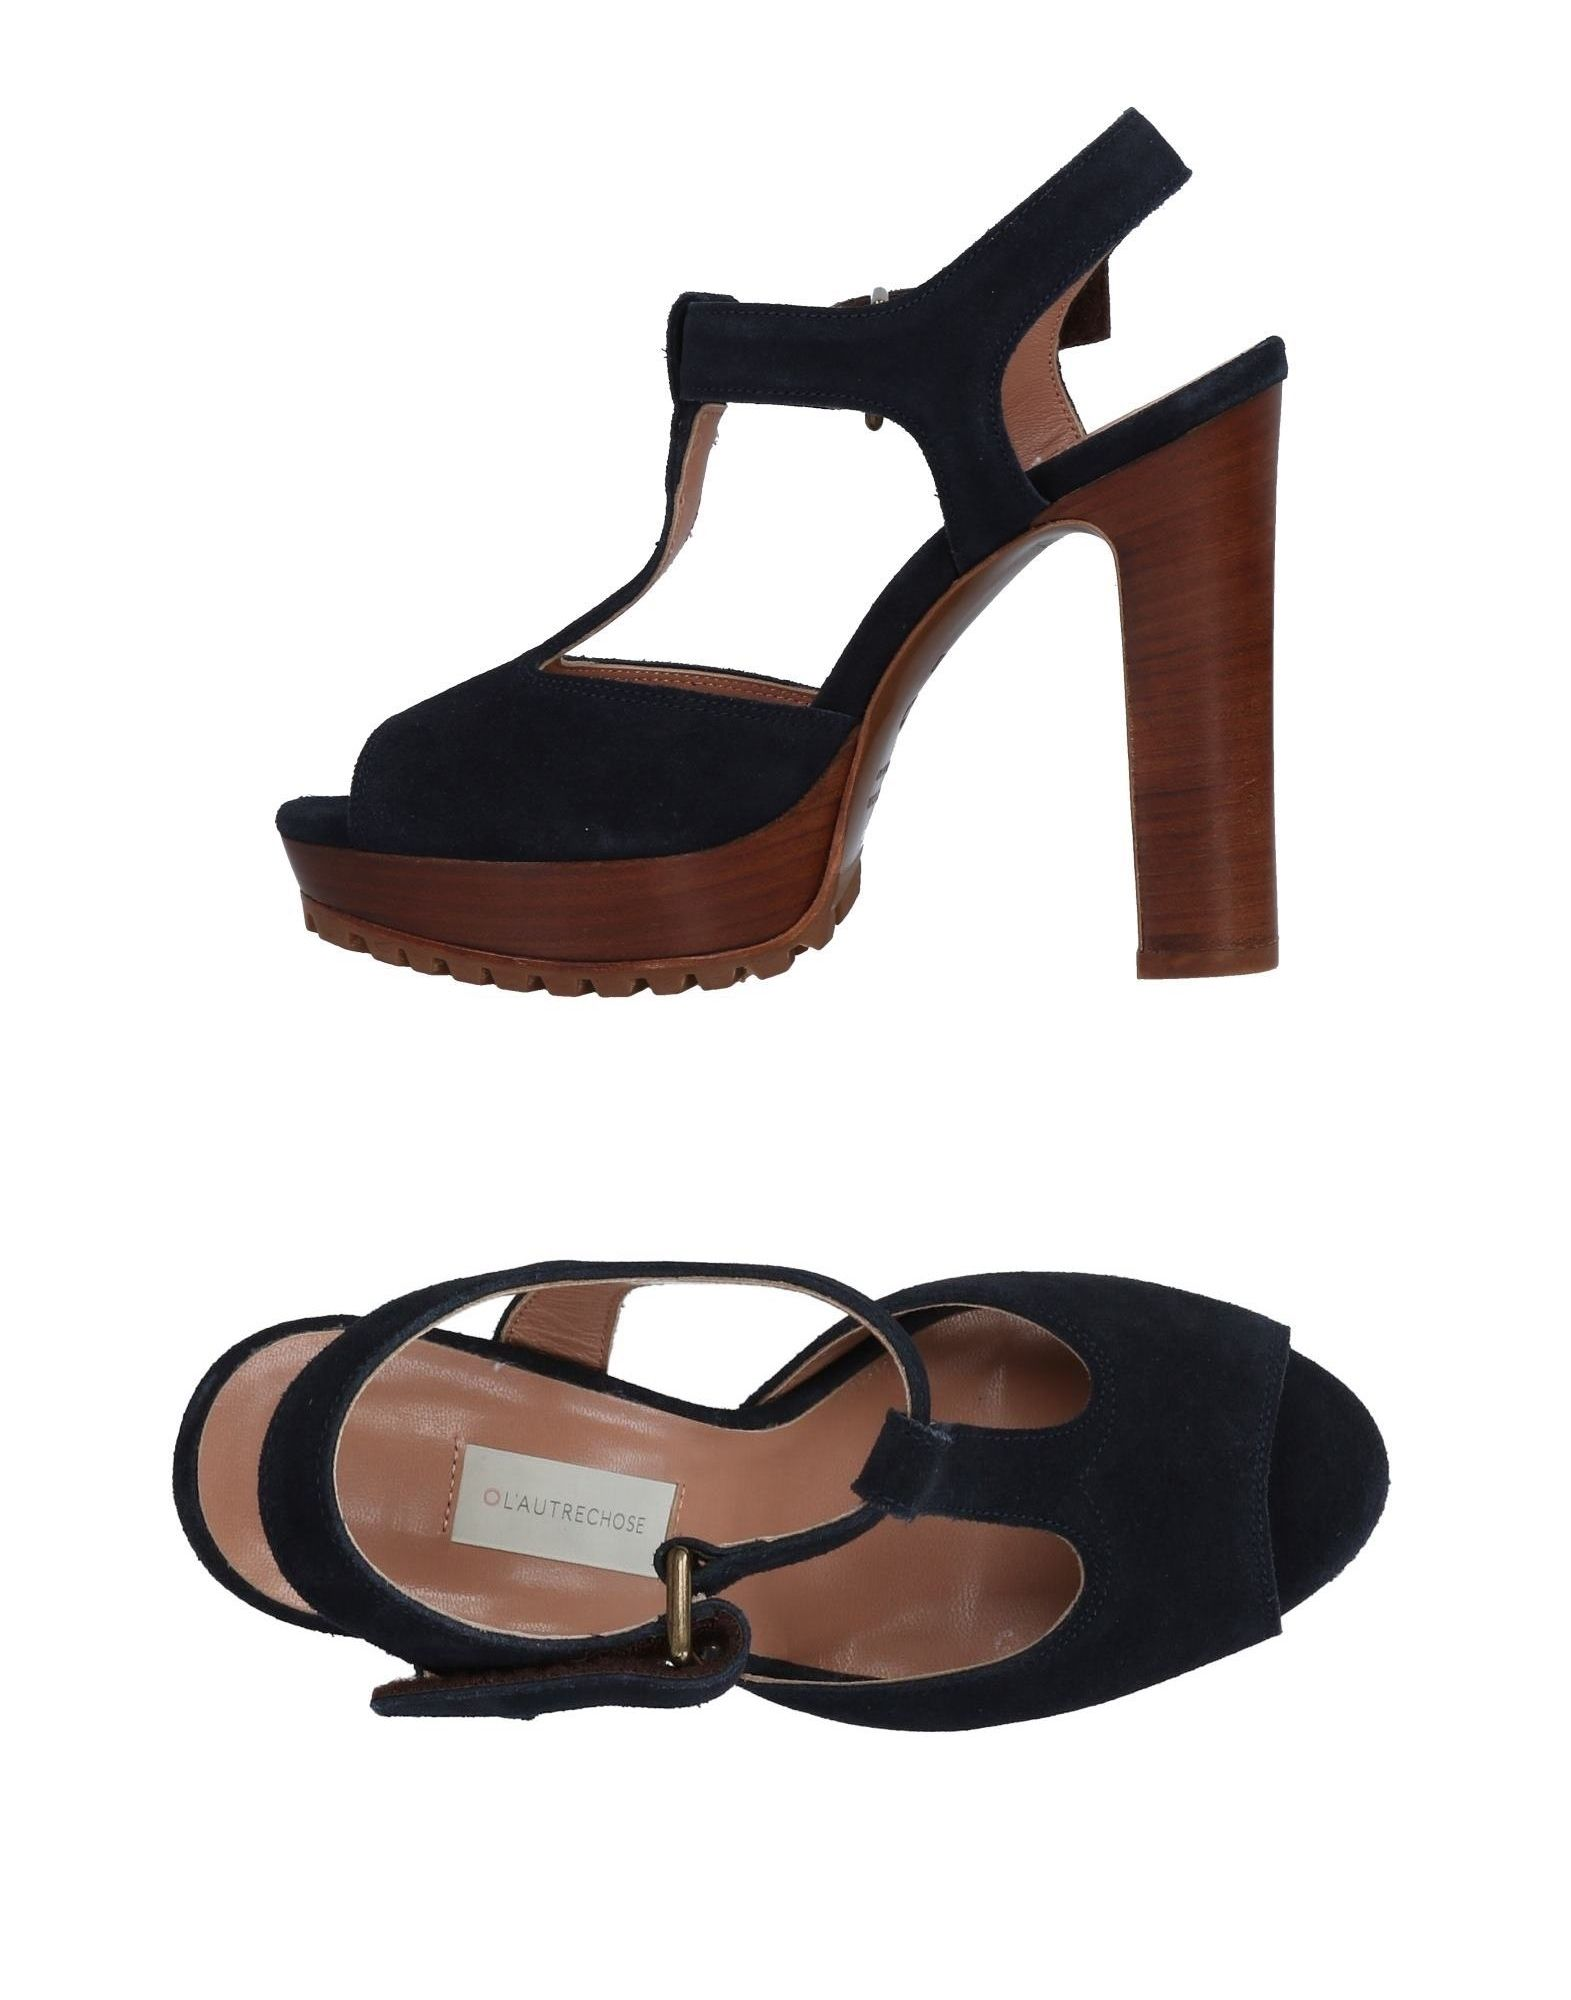 L' Autre Chose Sandals - Women L' Autre Chose Sandals Sandals Sandals online on  United Kingdom - 11488003VV 1f2ab1